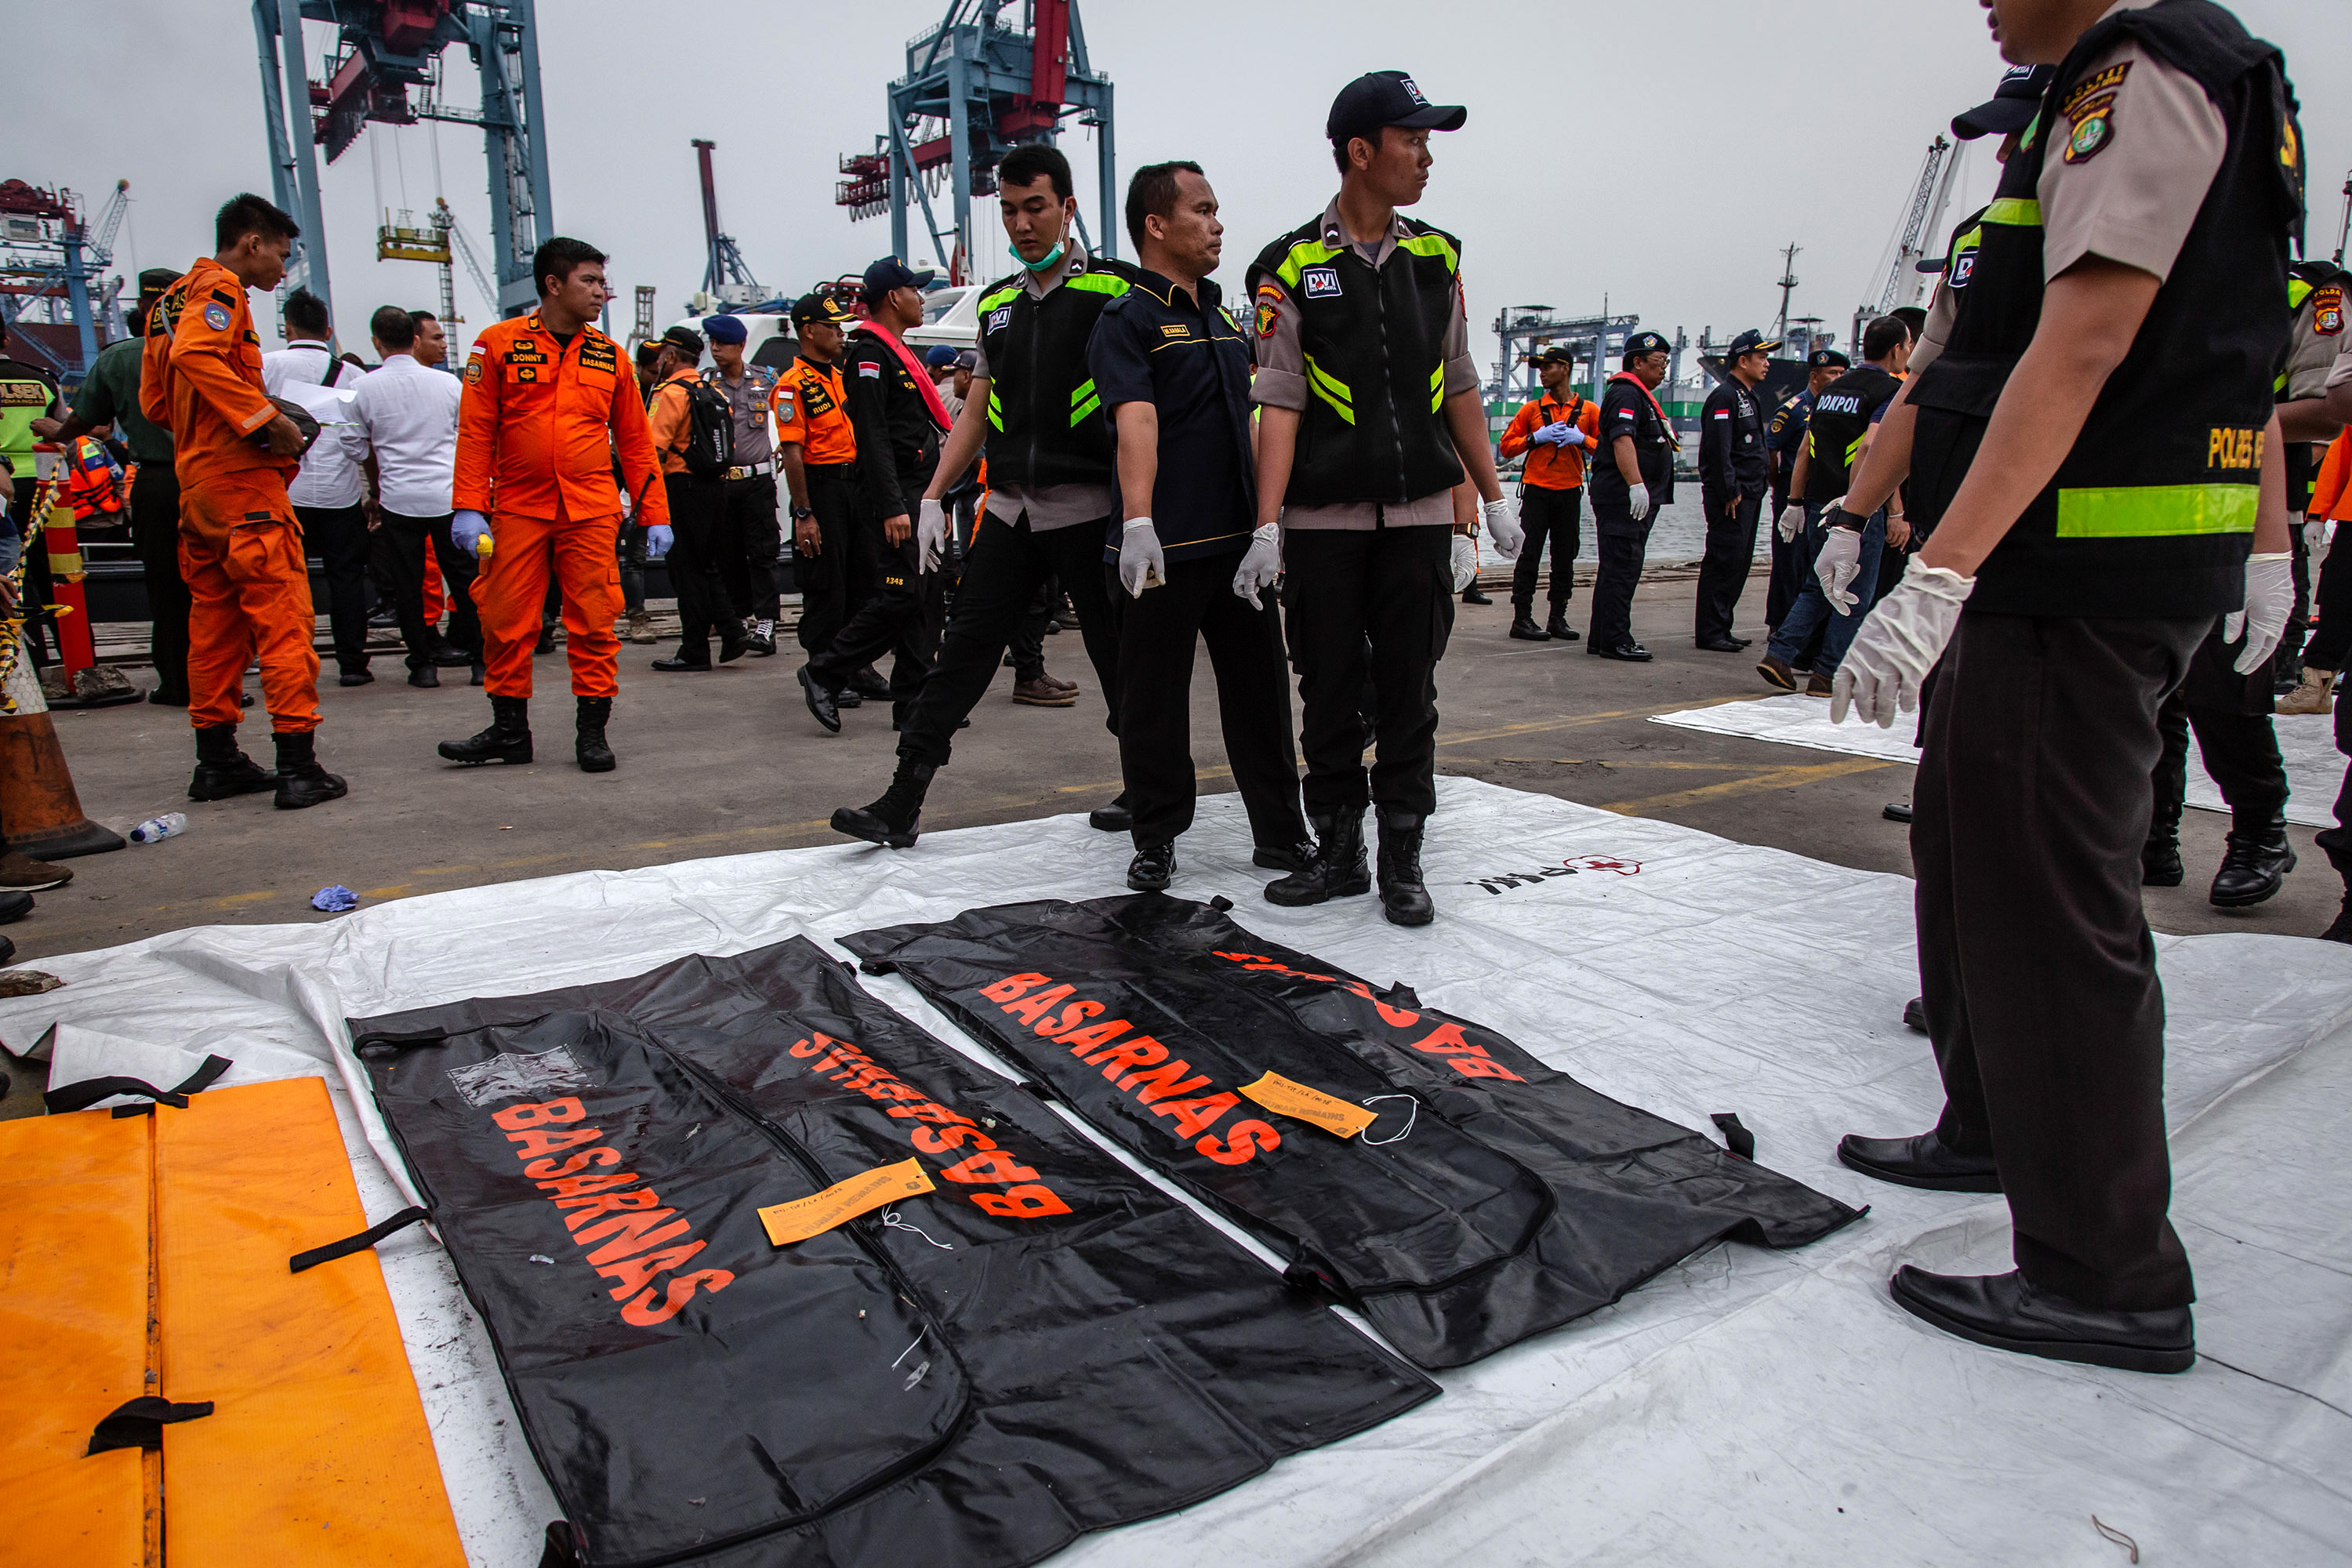 Indonesian police prepare to carry body bags containing remains of a passenger as they recover bodies and personal items from Lion Air flight JT 610 at the Tanjung Priok port Tuesday in Jakarta.